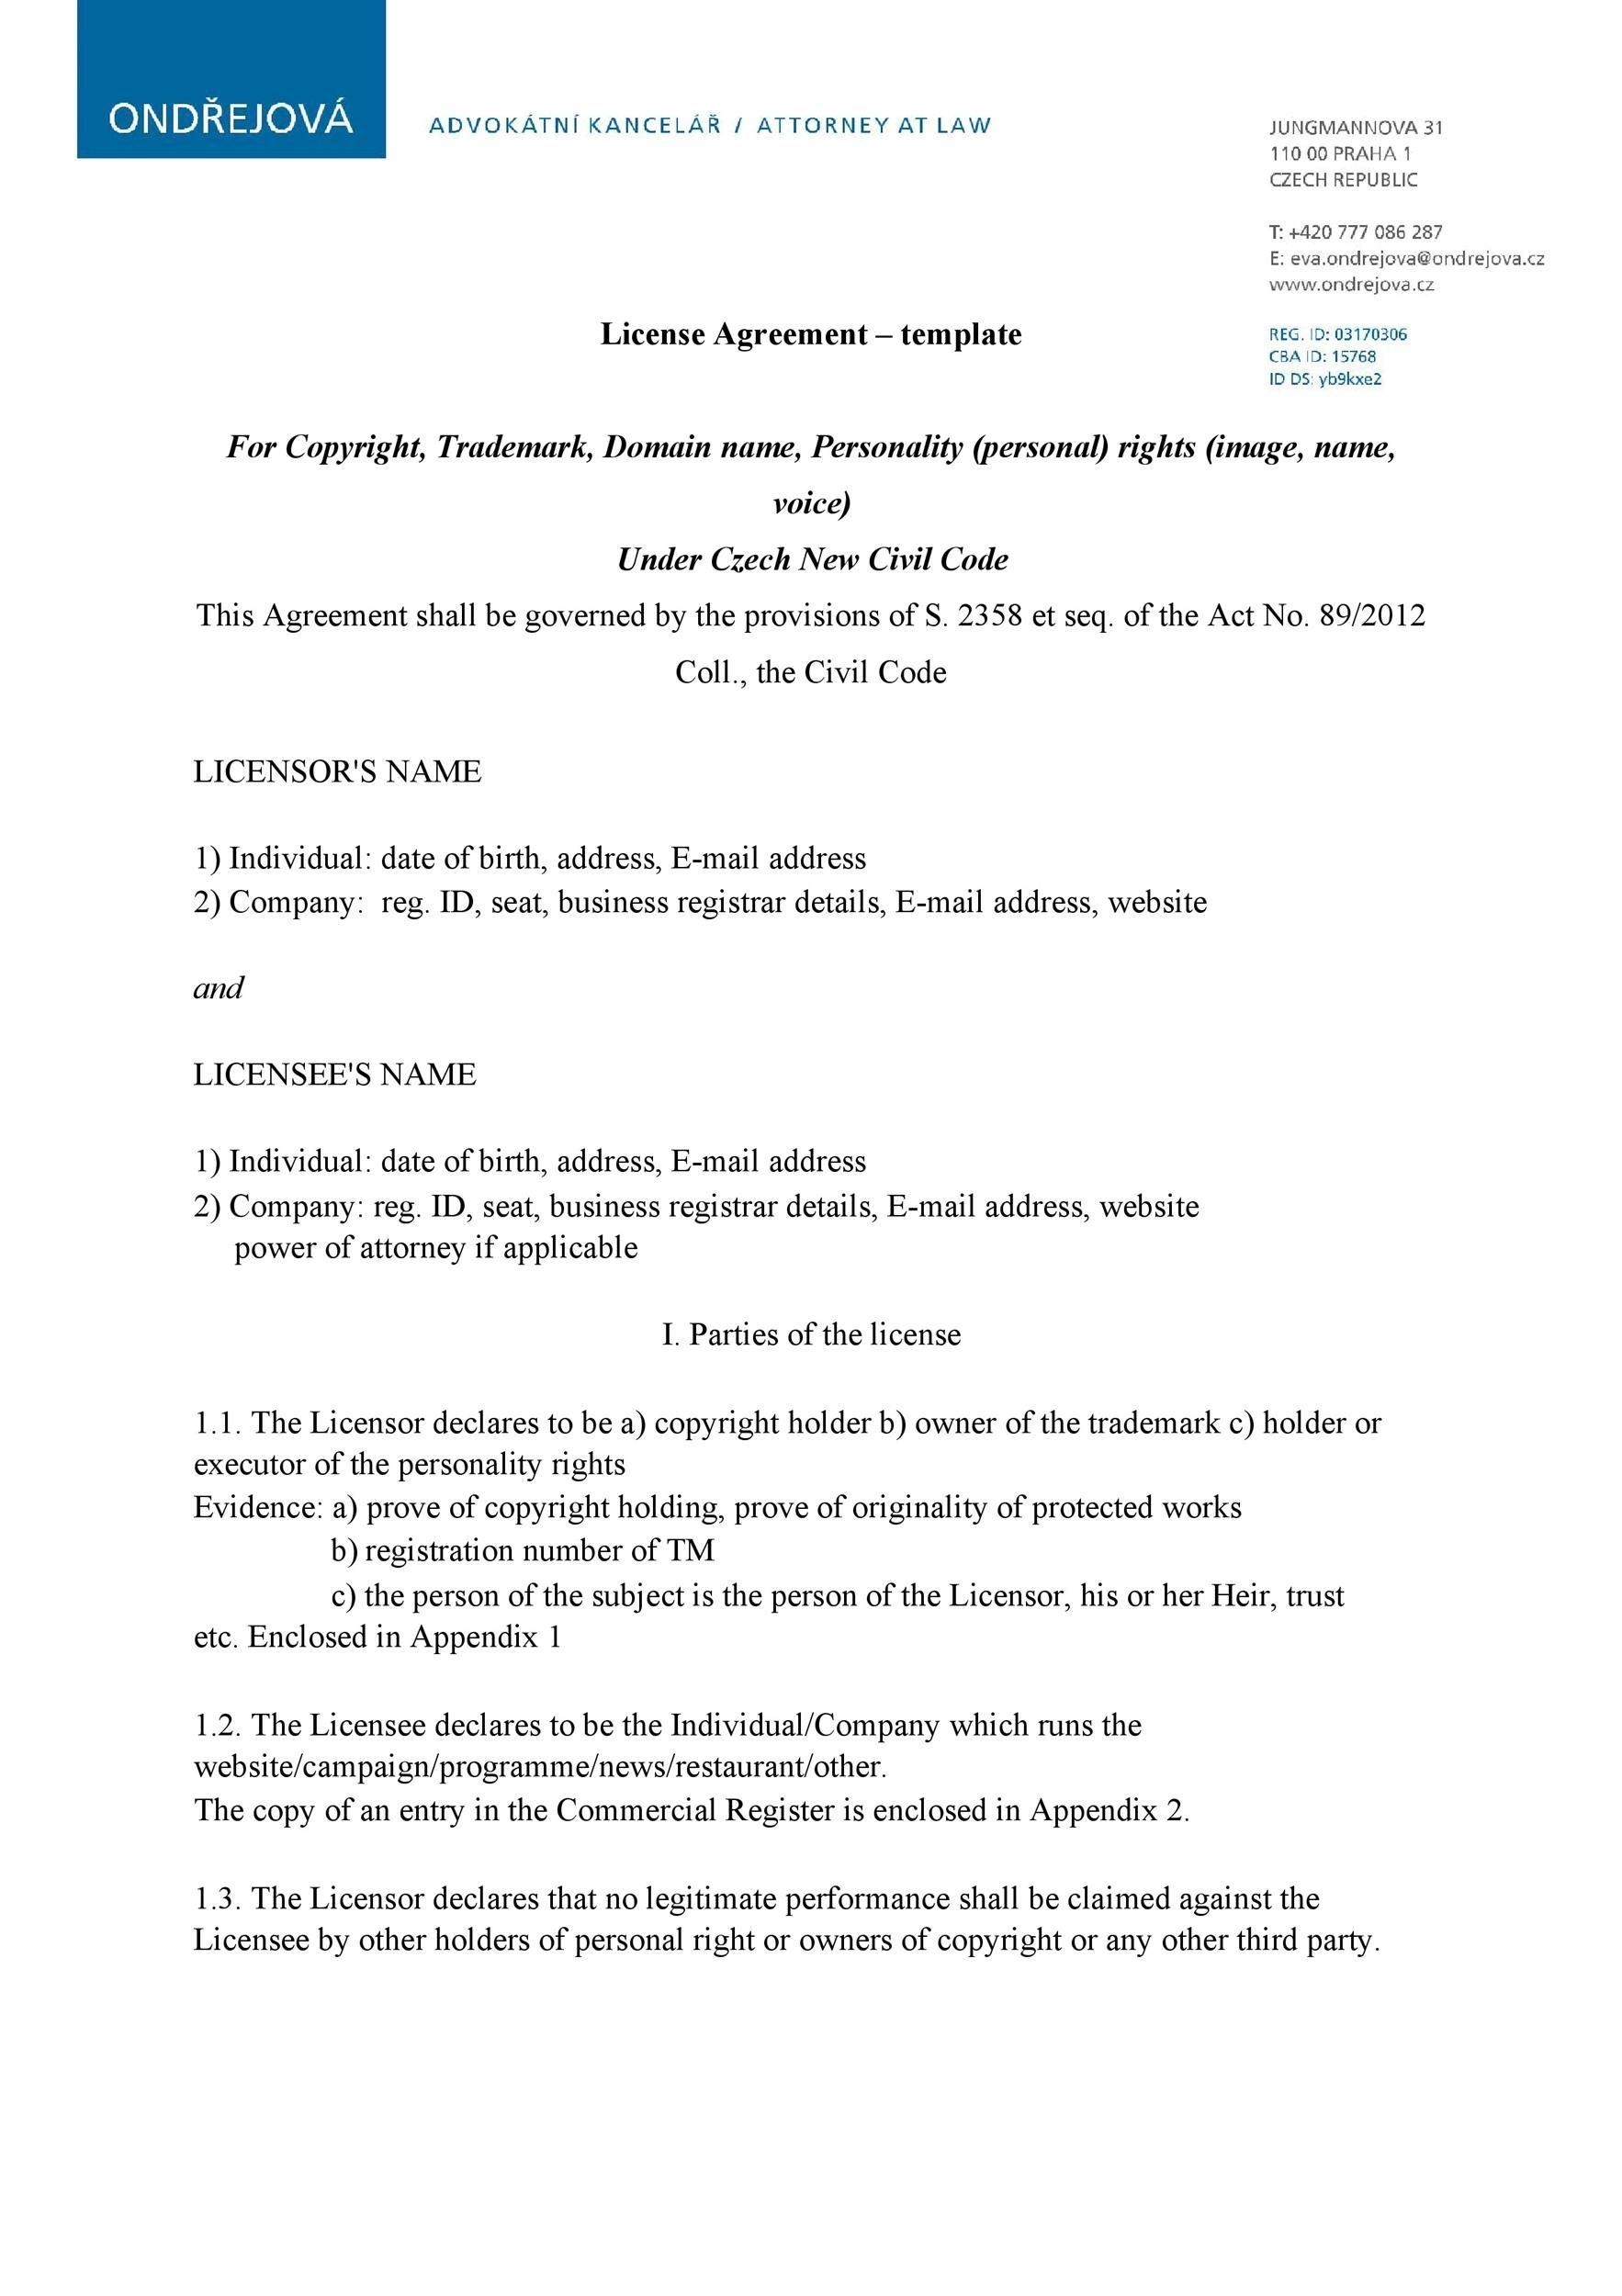 Brand Licensing Agreement Template Free Printable In 2021 Templates Templates Printable Free Document Templates Missouri llc operating agreement template